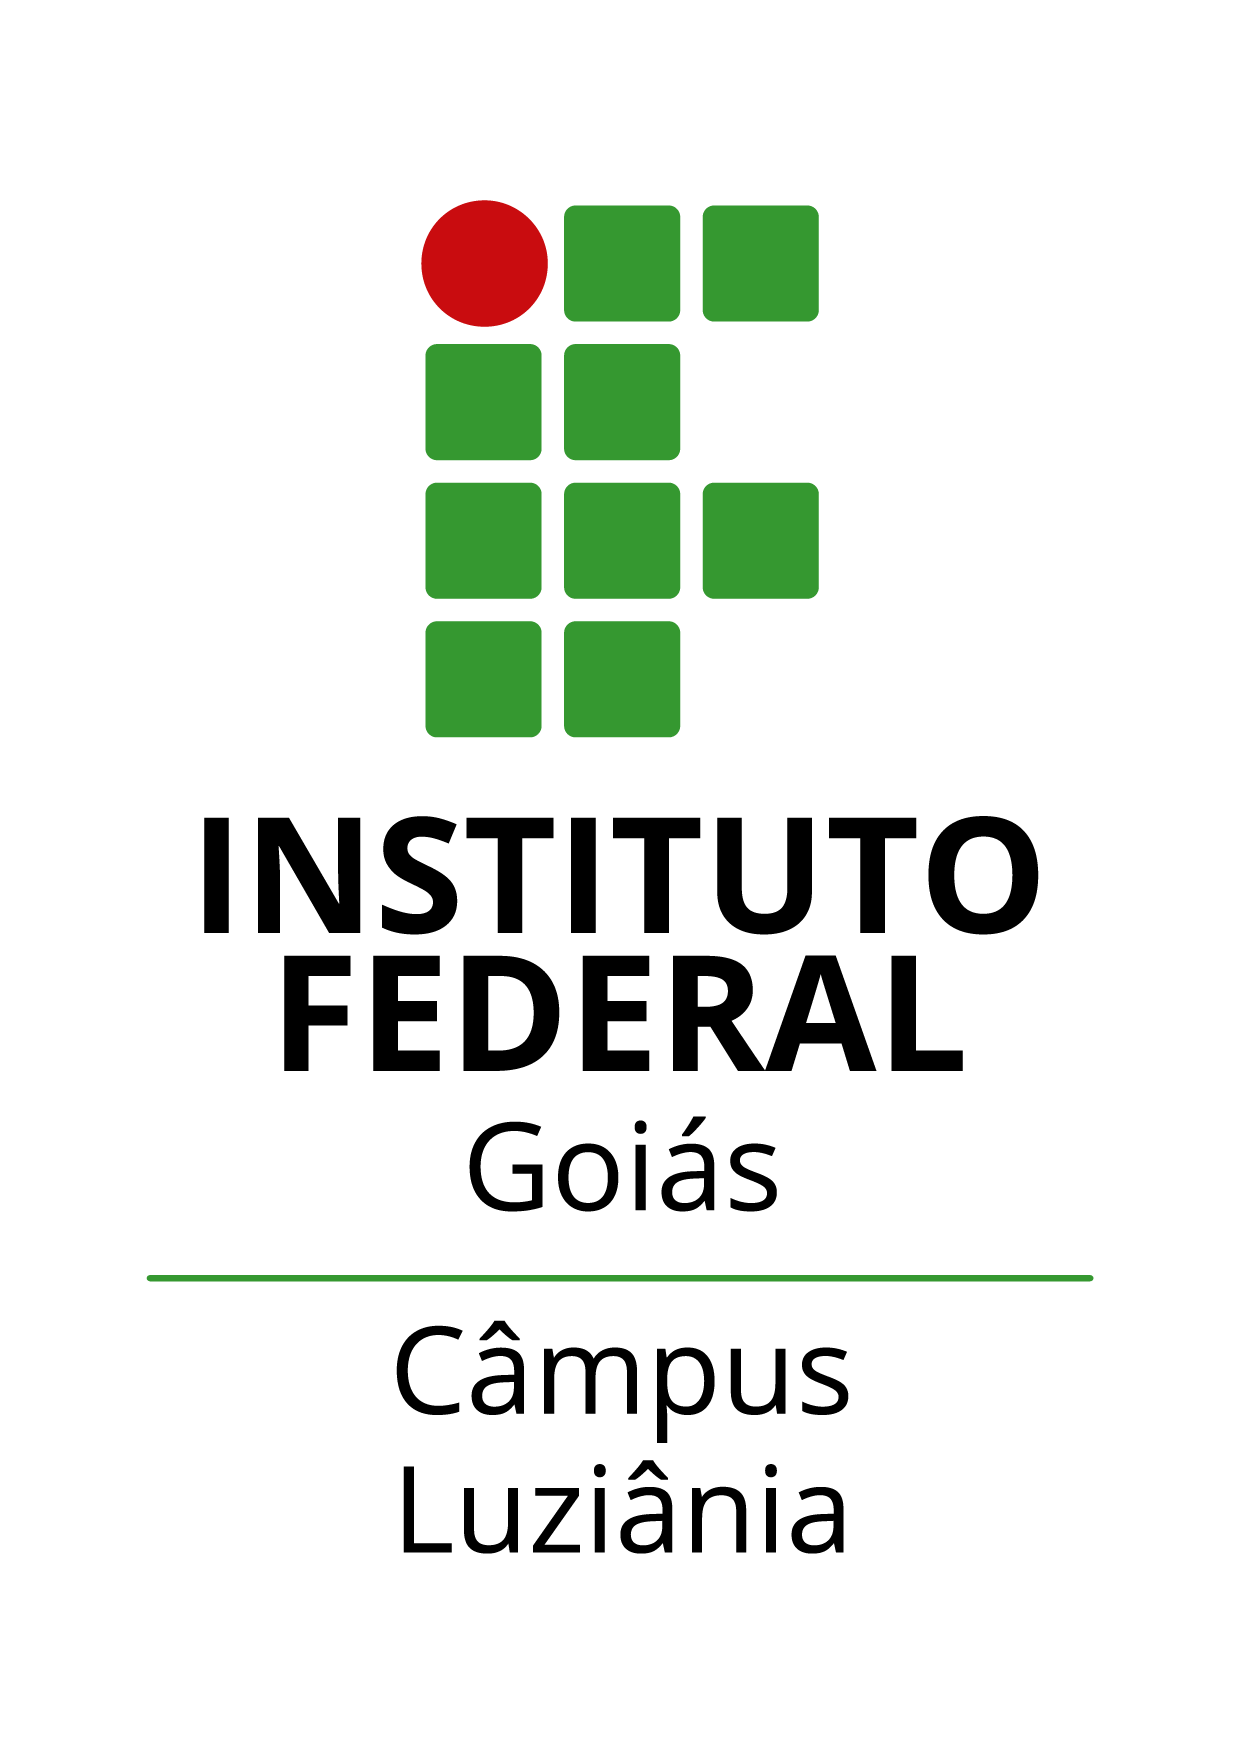 Logo do IFG - Câmpus Luziânia